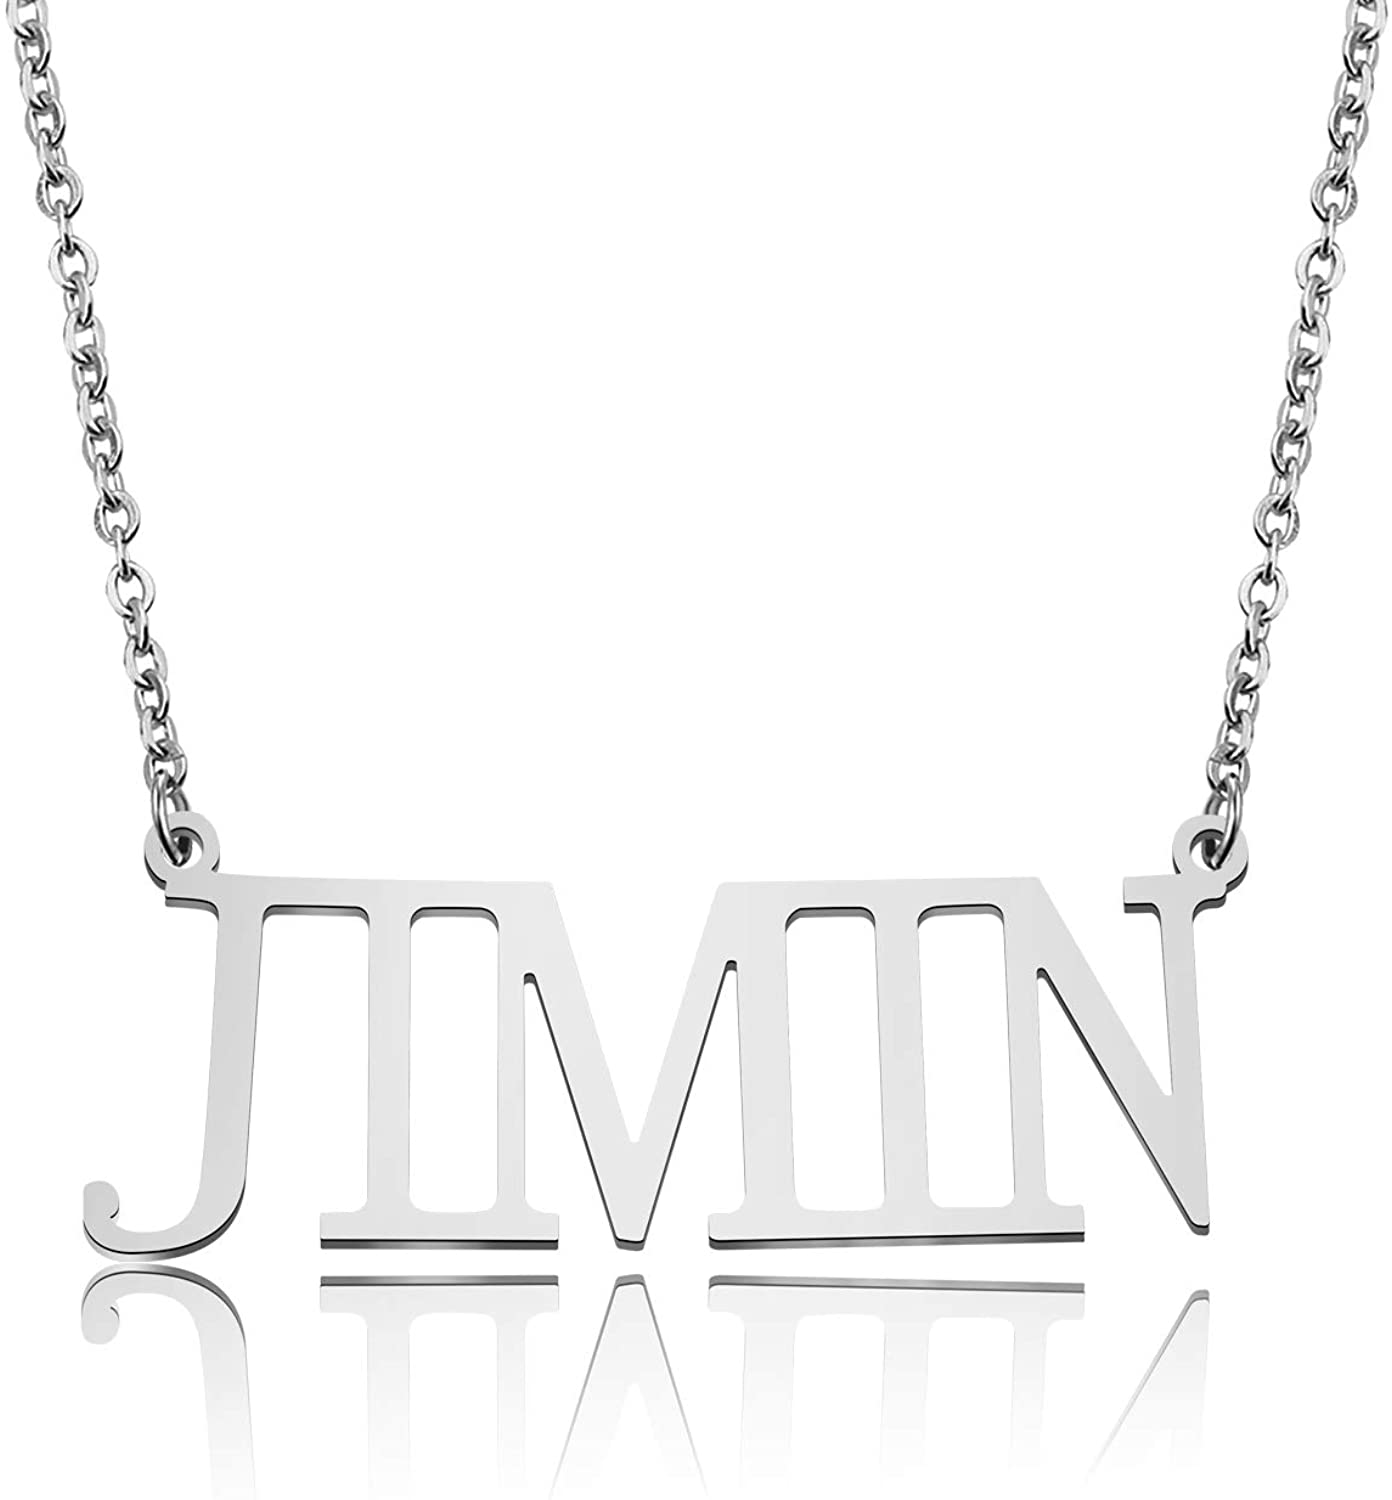 UJIMS BTS Korean Group Army Gift BTS Members Name Pendant Army Necklace for BTS Fans BFF Kpop Bangtan Boys Jewelry for Women